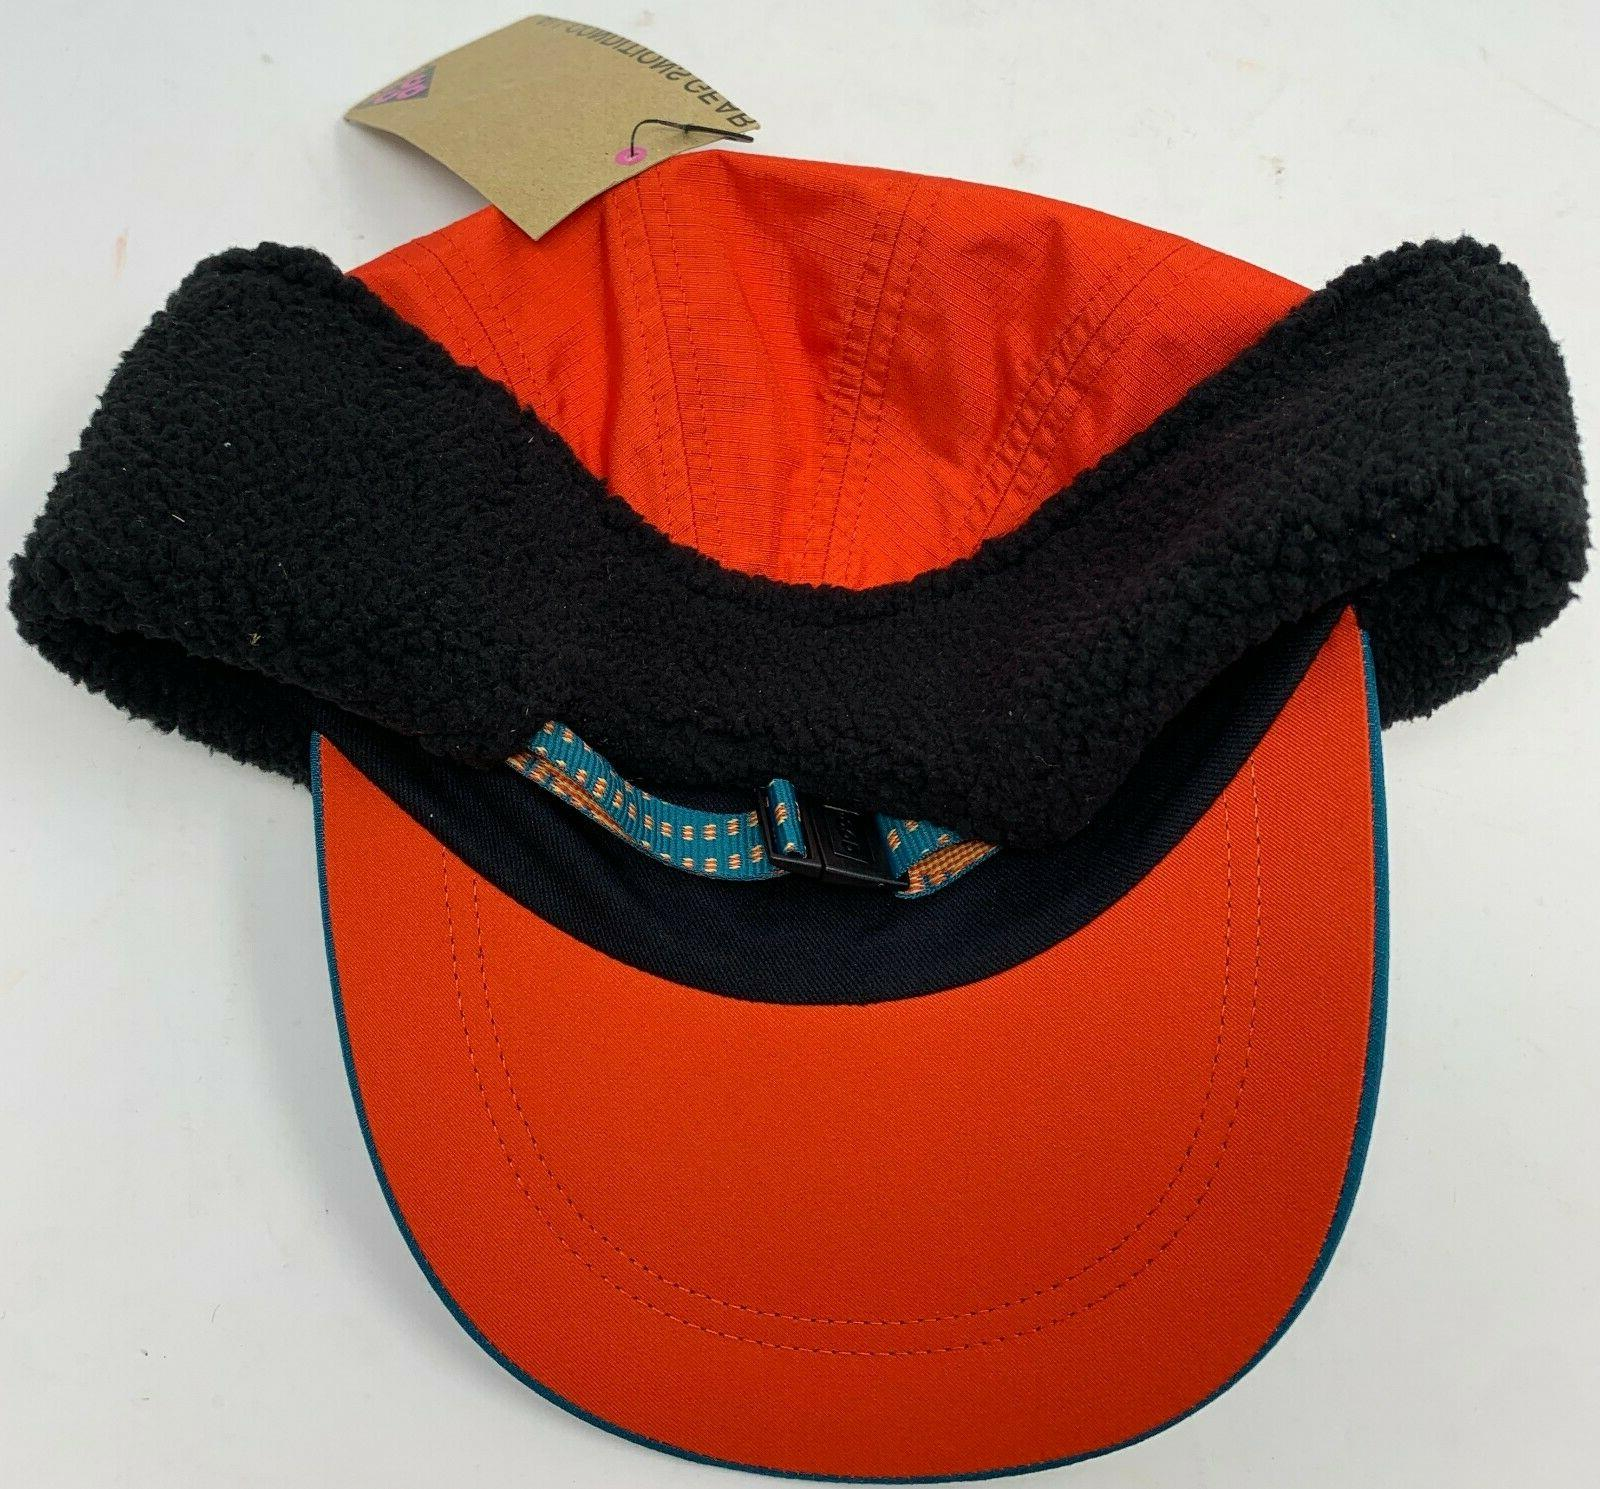 AR0497-381 NWT Nike ACG Tailwind Hat with Ear Flap Red